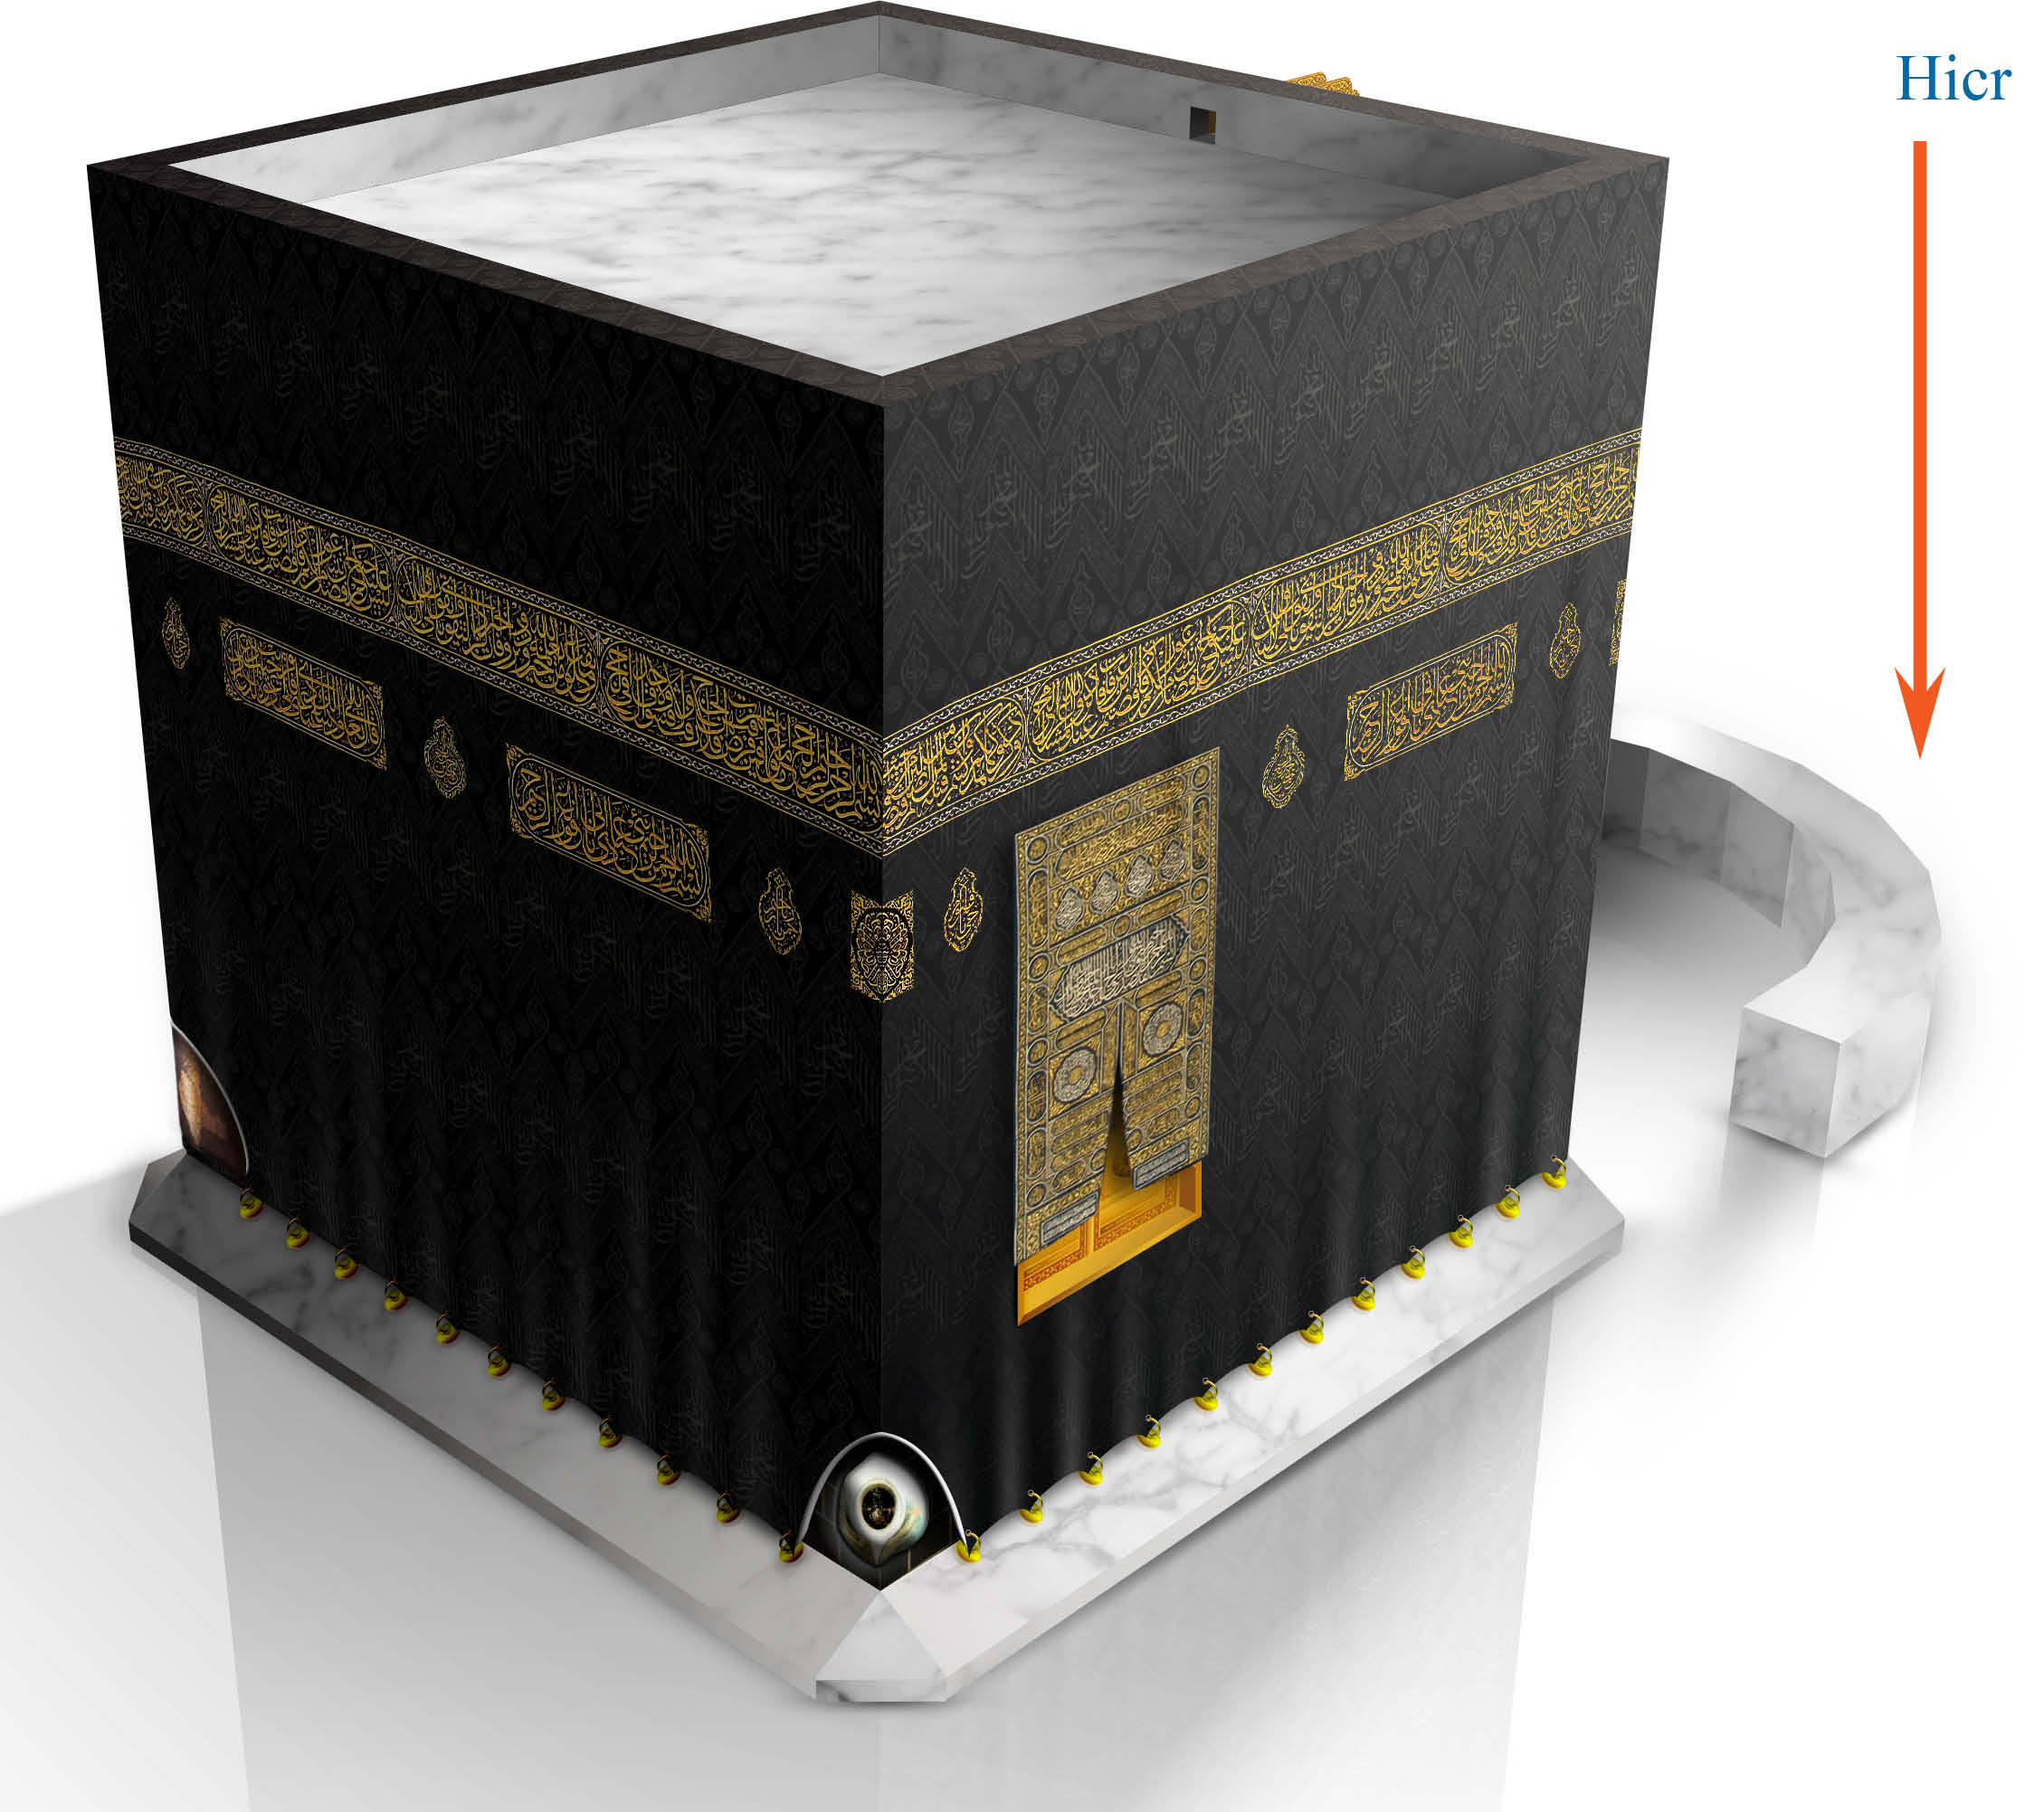 05_01_011-The venerable Ka'bah12.jpg